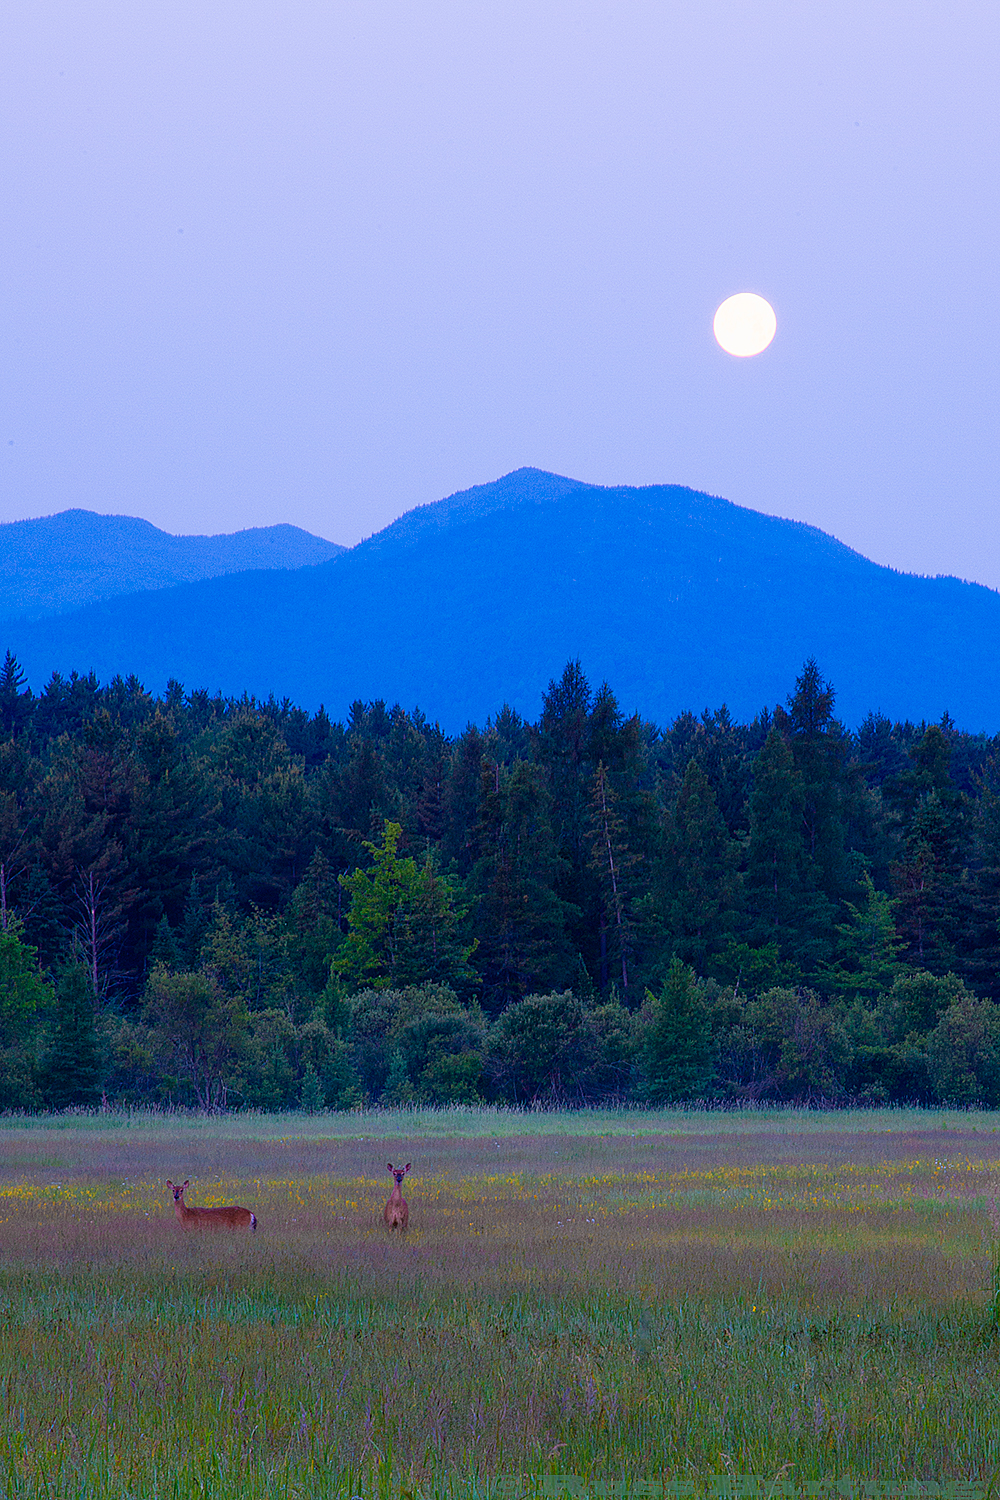 The Moon is setting just before sunrise over a meadow as two deer look up from their breakfast.